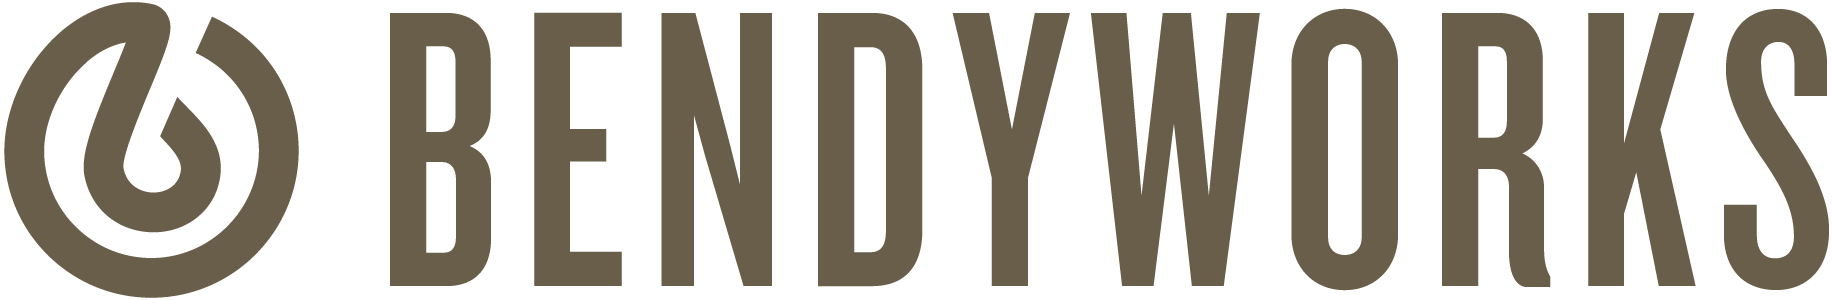 bendyworks_logo-with_text-no_shadow - Stephen Anderson.png